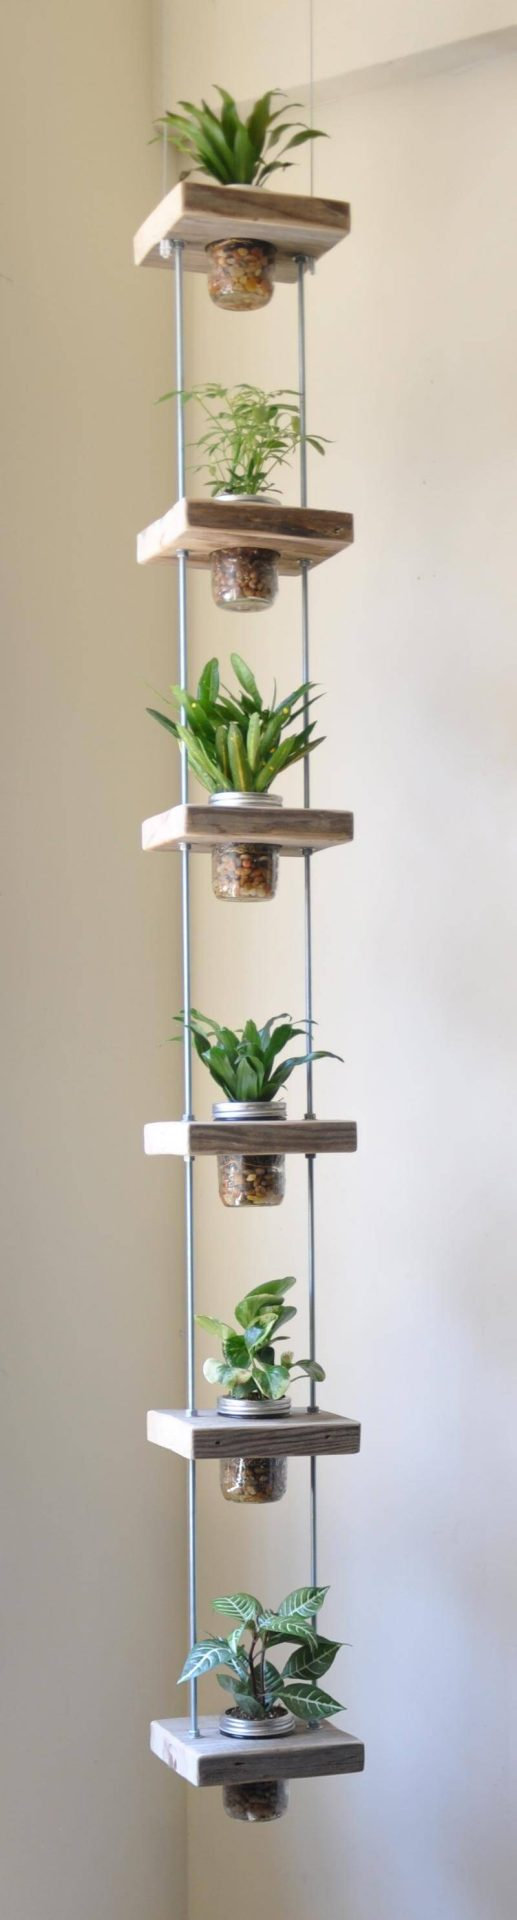 hanging jars with herbs in them